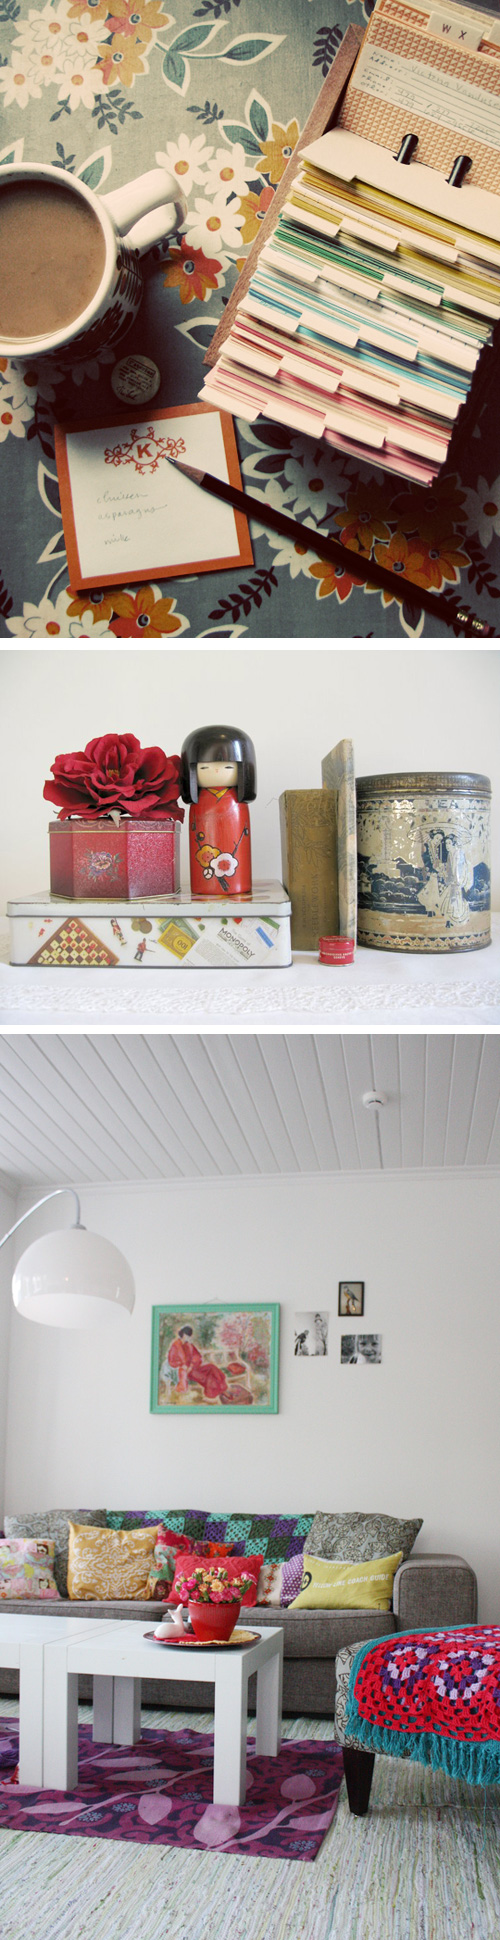 Interior Styling: Real Spaces